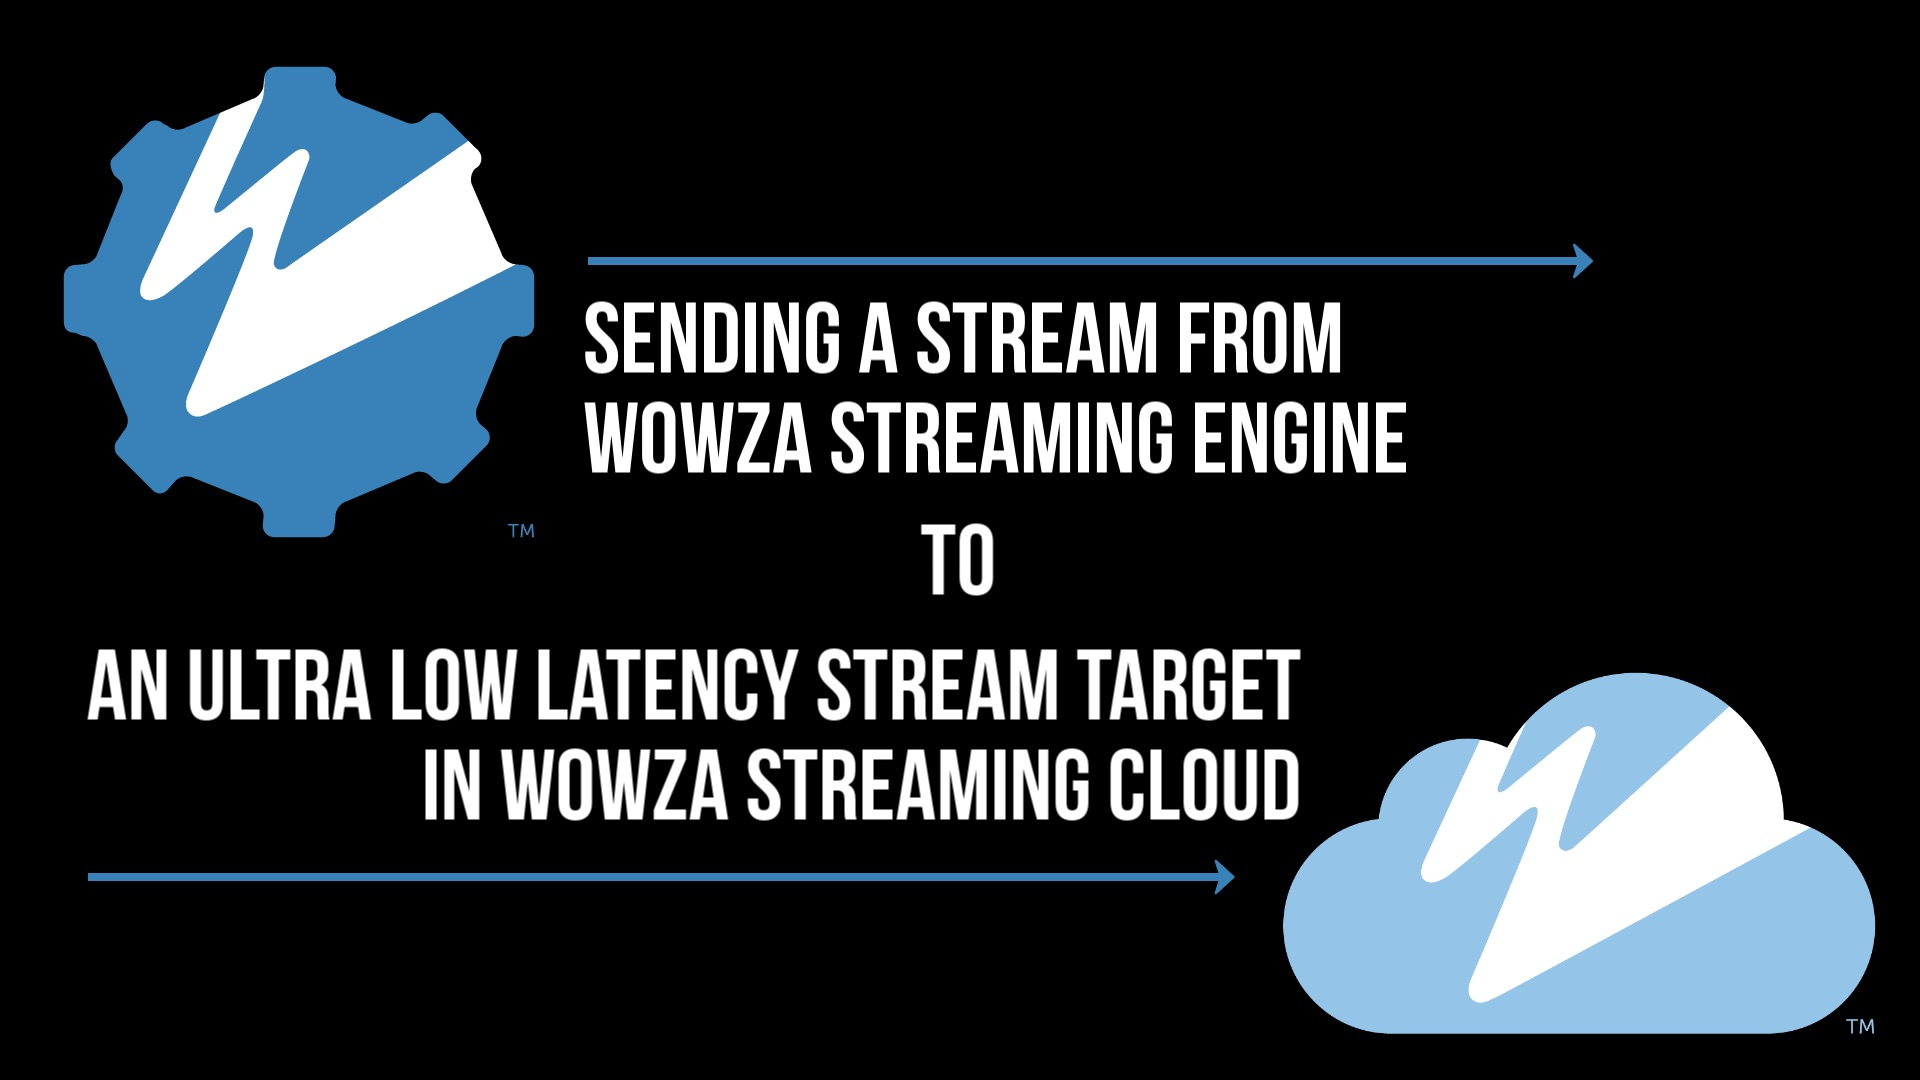 Send a stream from Wowza Streaming Engine to an ultra